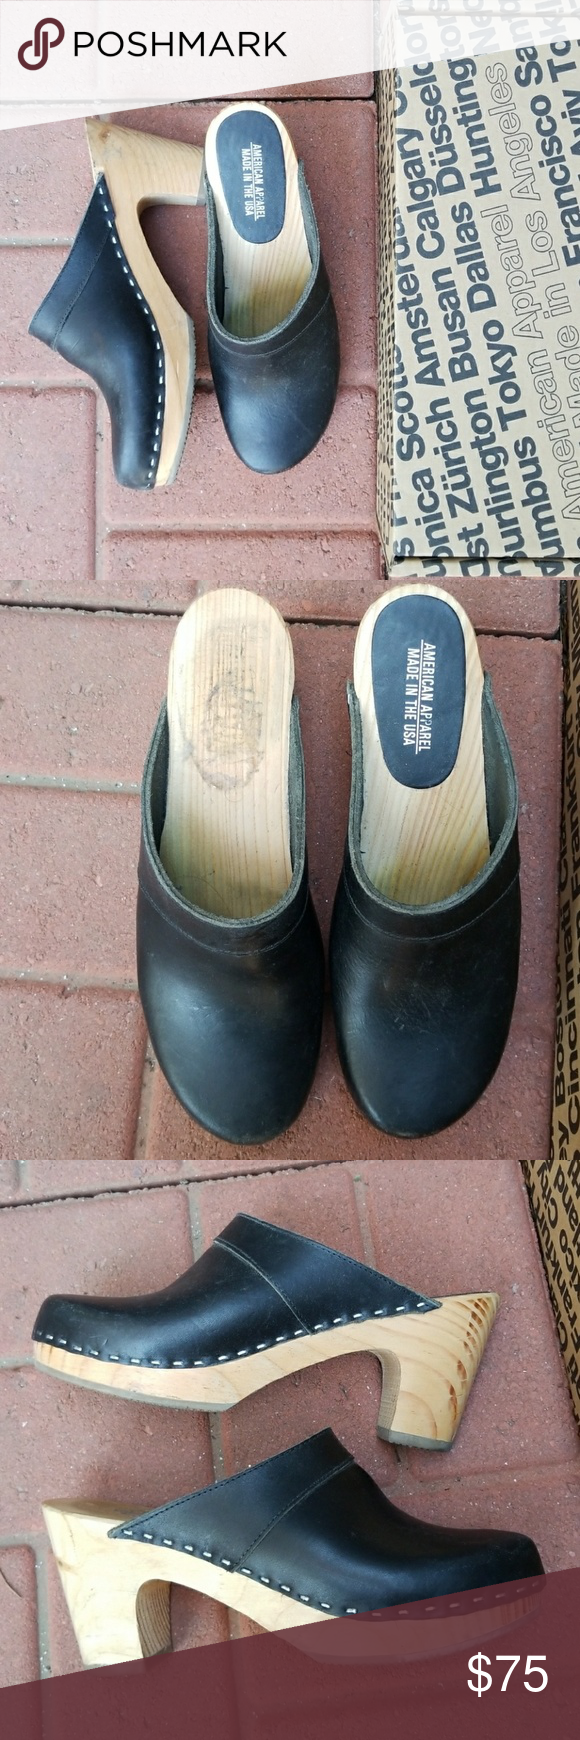 American Apparel closed toe clog leather American Apparel black leather closed toe clog.. has a rubber bottom for a nice grip. Worn a cpl times but in good condition. Normal Wear marks can be seen but overall in great shape. No trades American Apparel Shoes Mules & Clogs